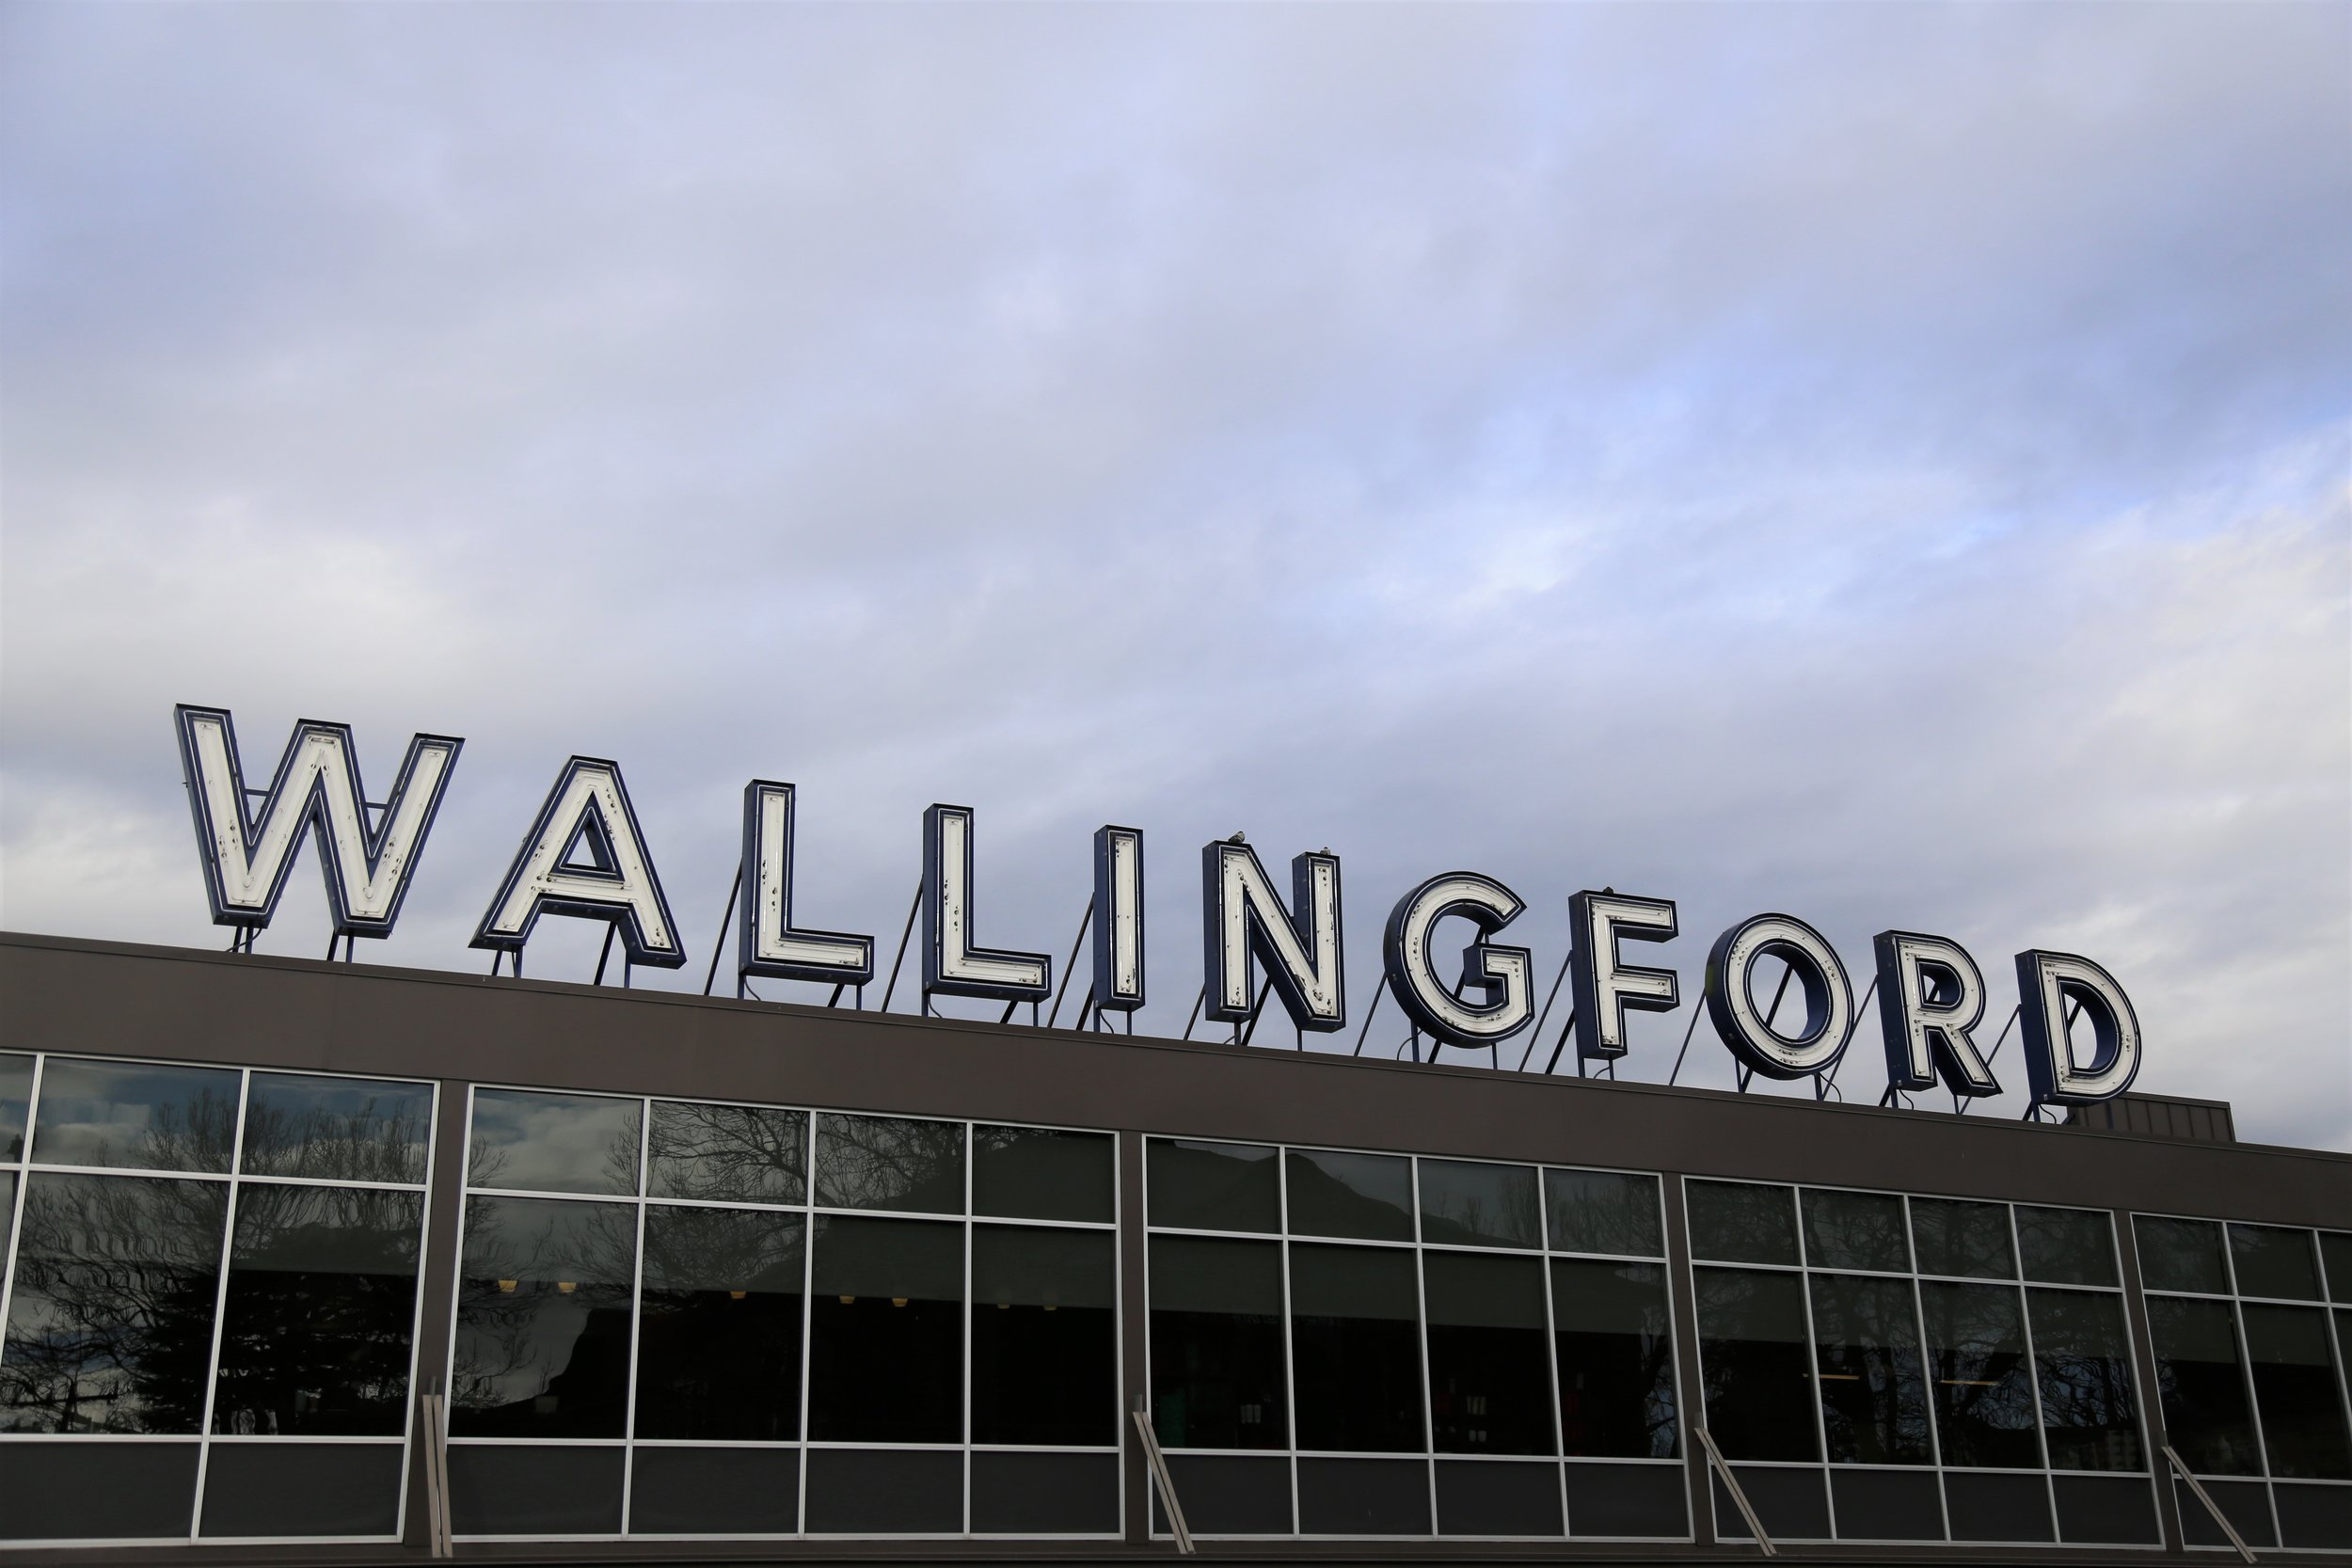 QFC's giant Wallingford sign